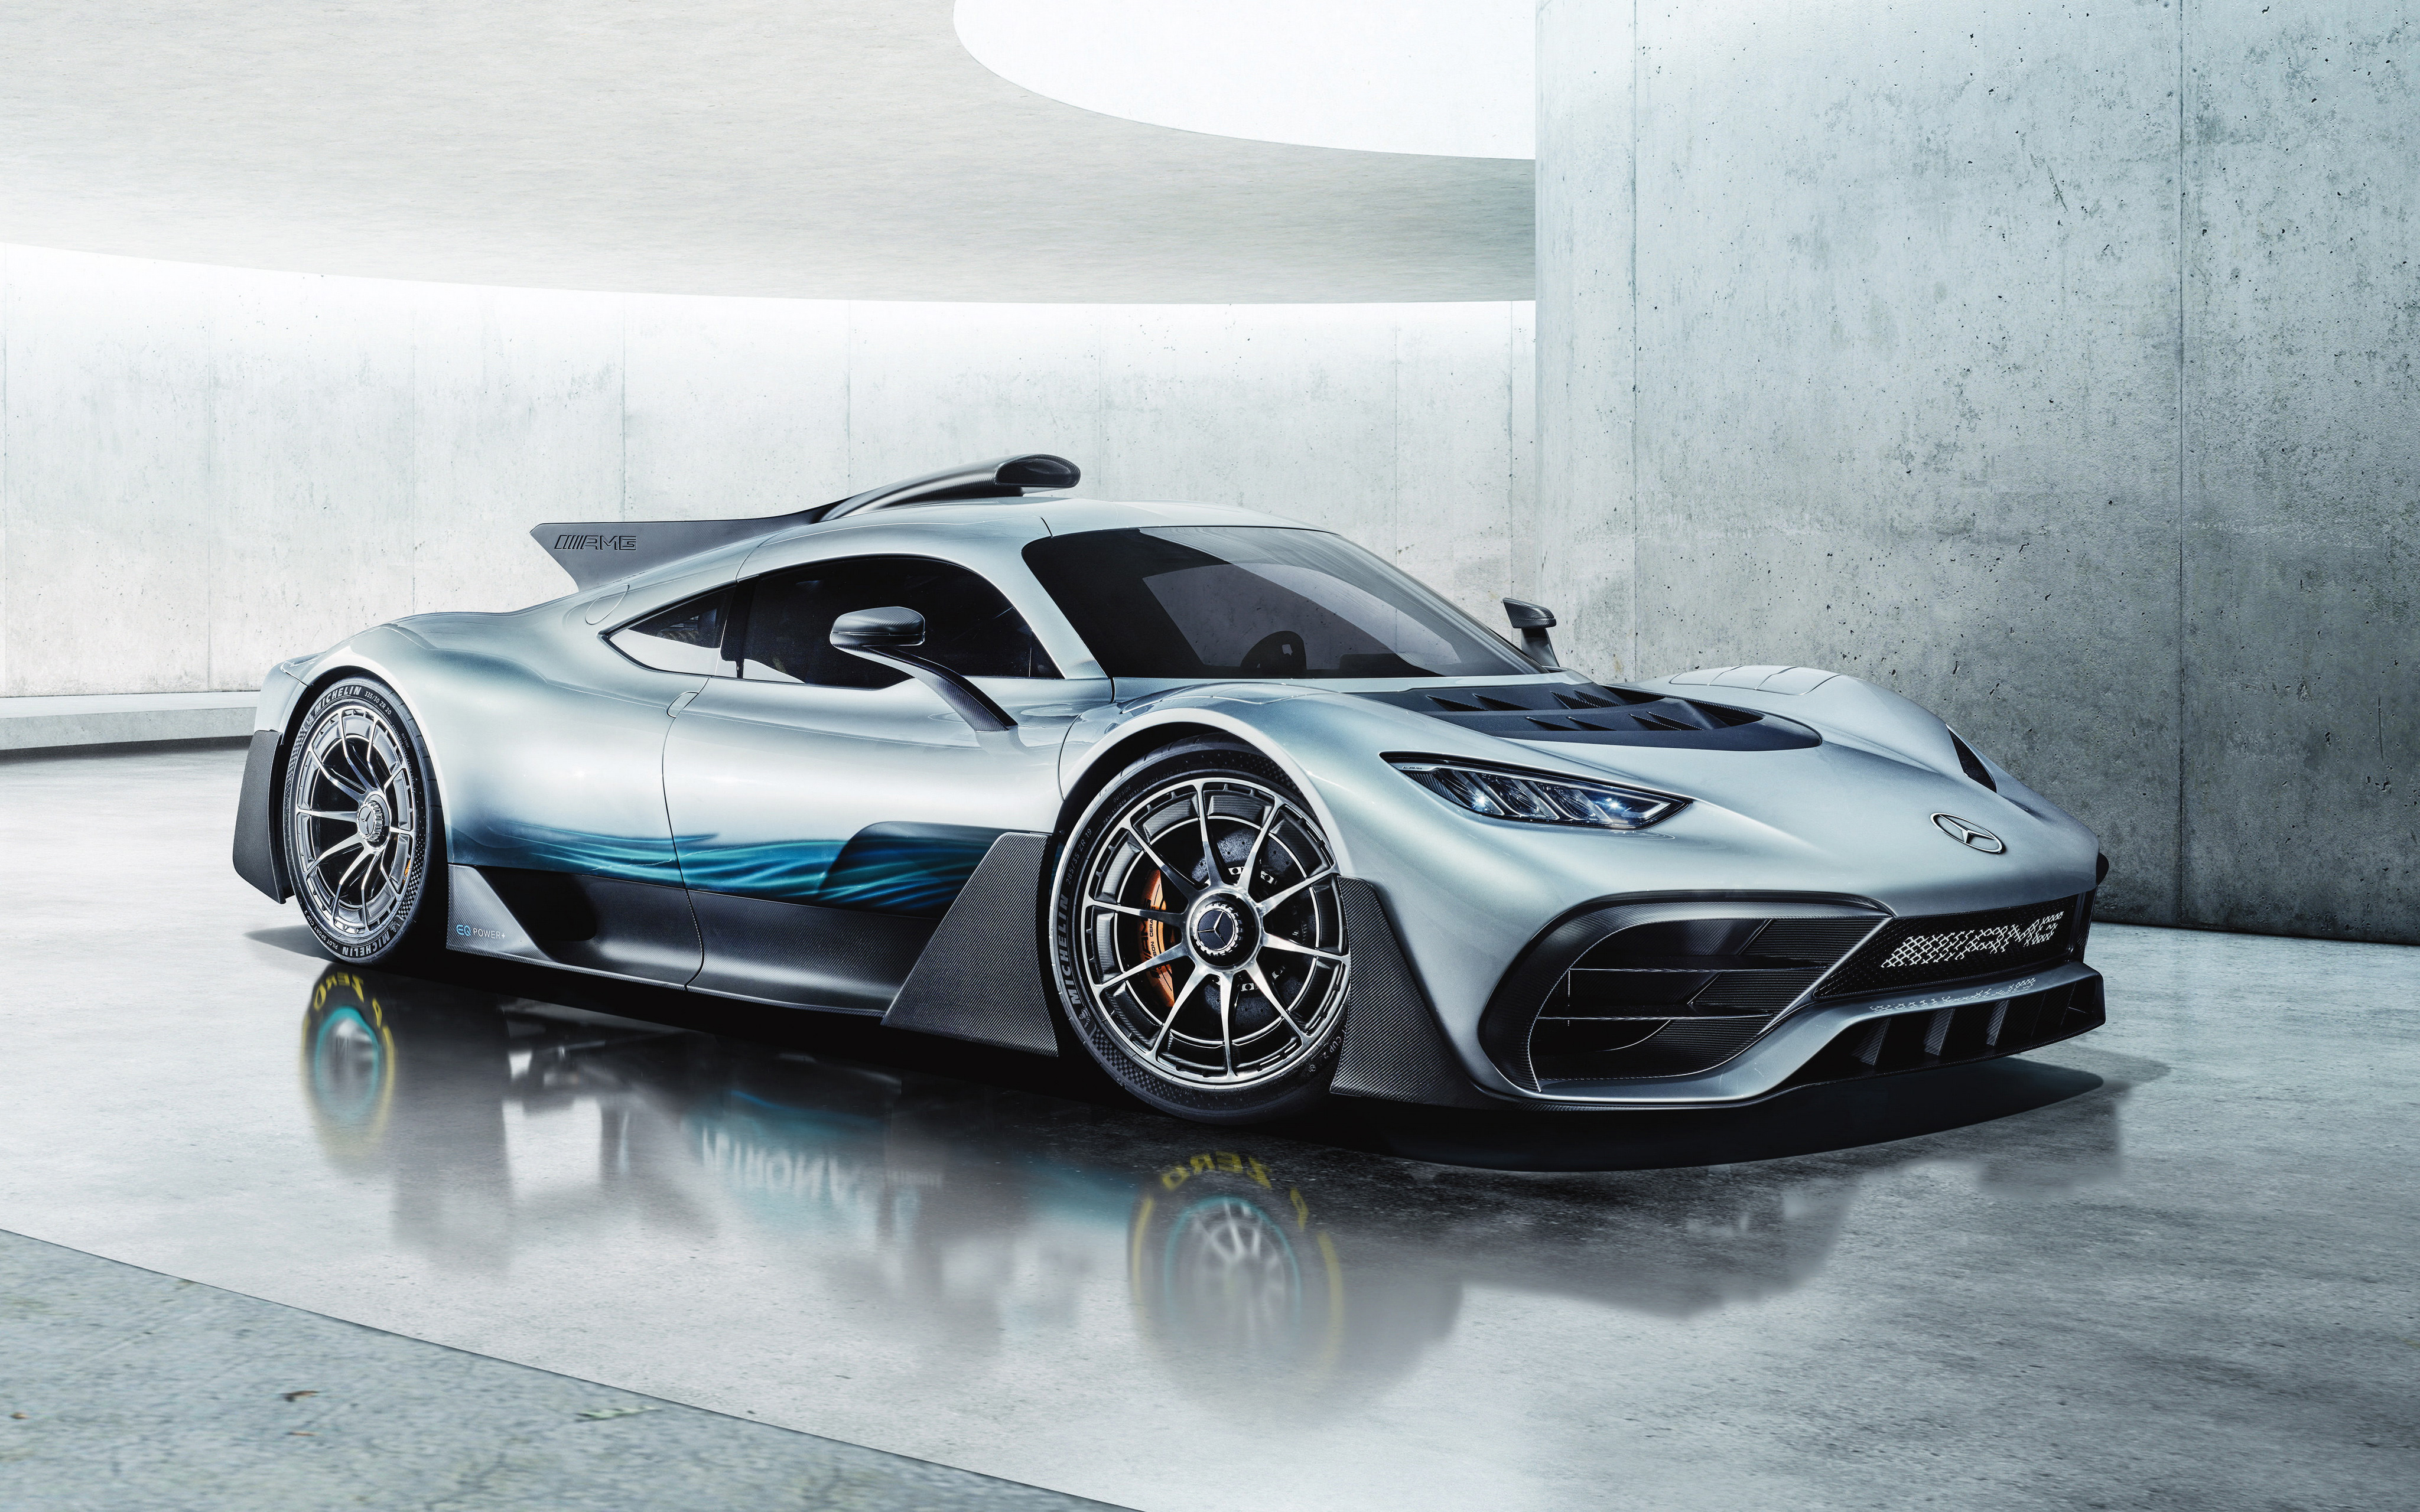 Mercedes AMG Project One 2019 4K4300511375 - Mercedes AMG Project One 2019 4K - Project, Pista, One, Mercedes, AMG, 2019